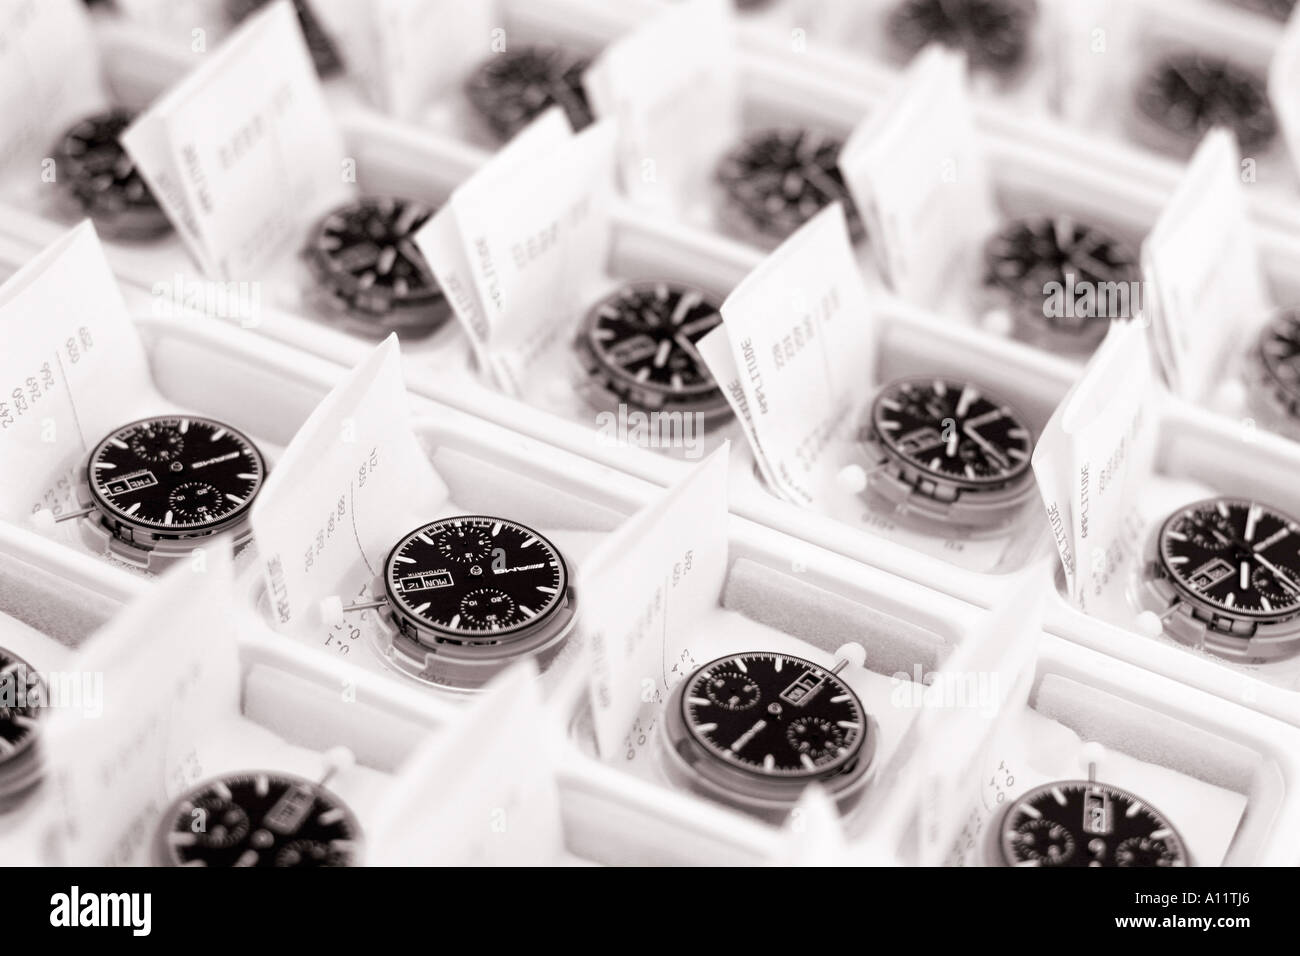 Clock dials watches waiting for quality control Stock Photo